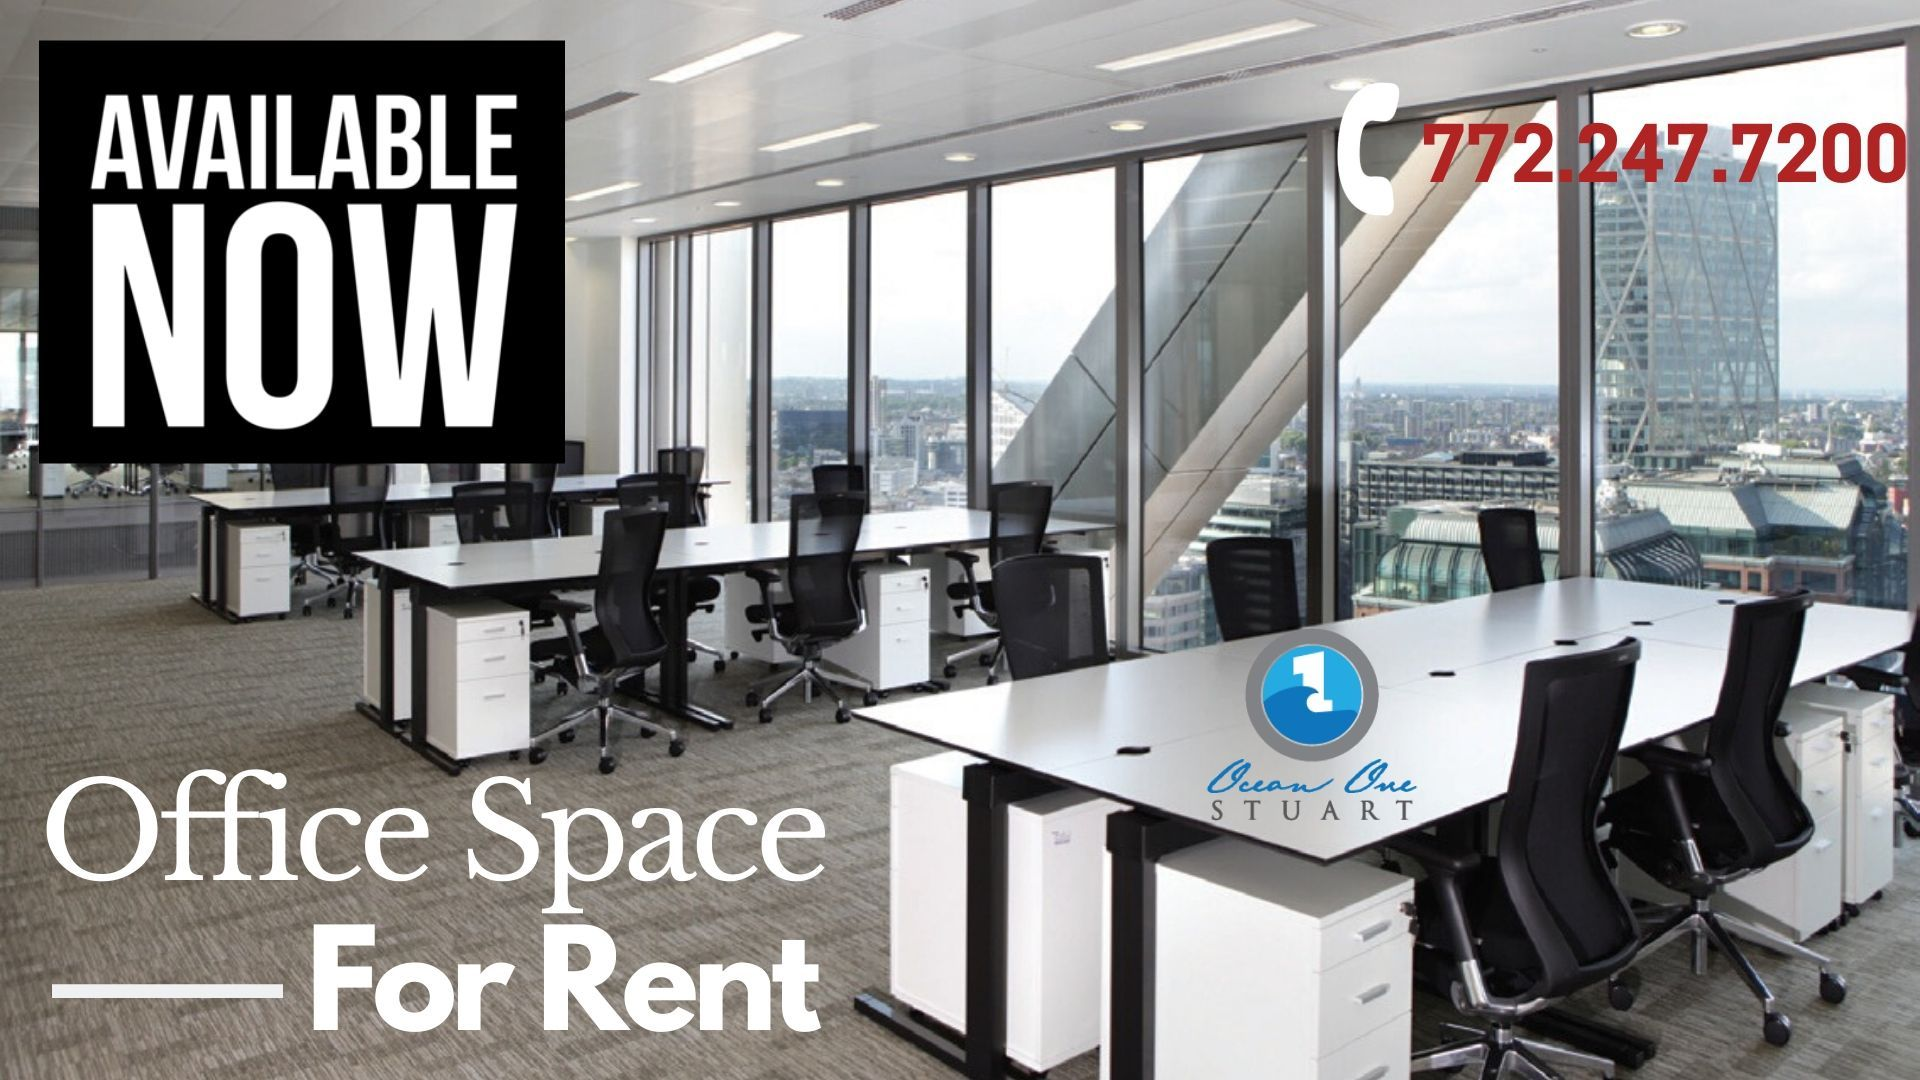 Best Office Spaces Office Space Modern Office Space Executive Suites